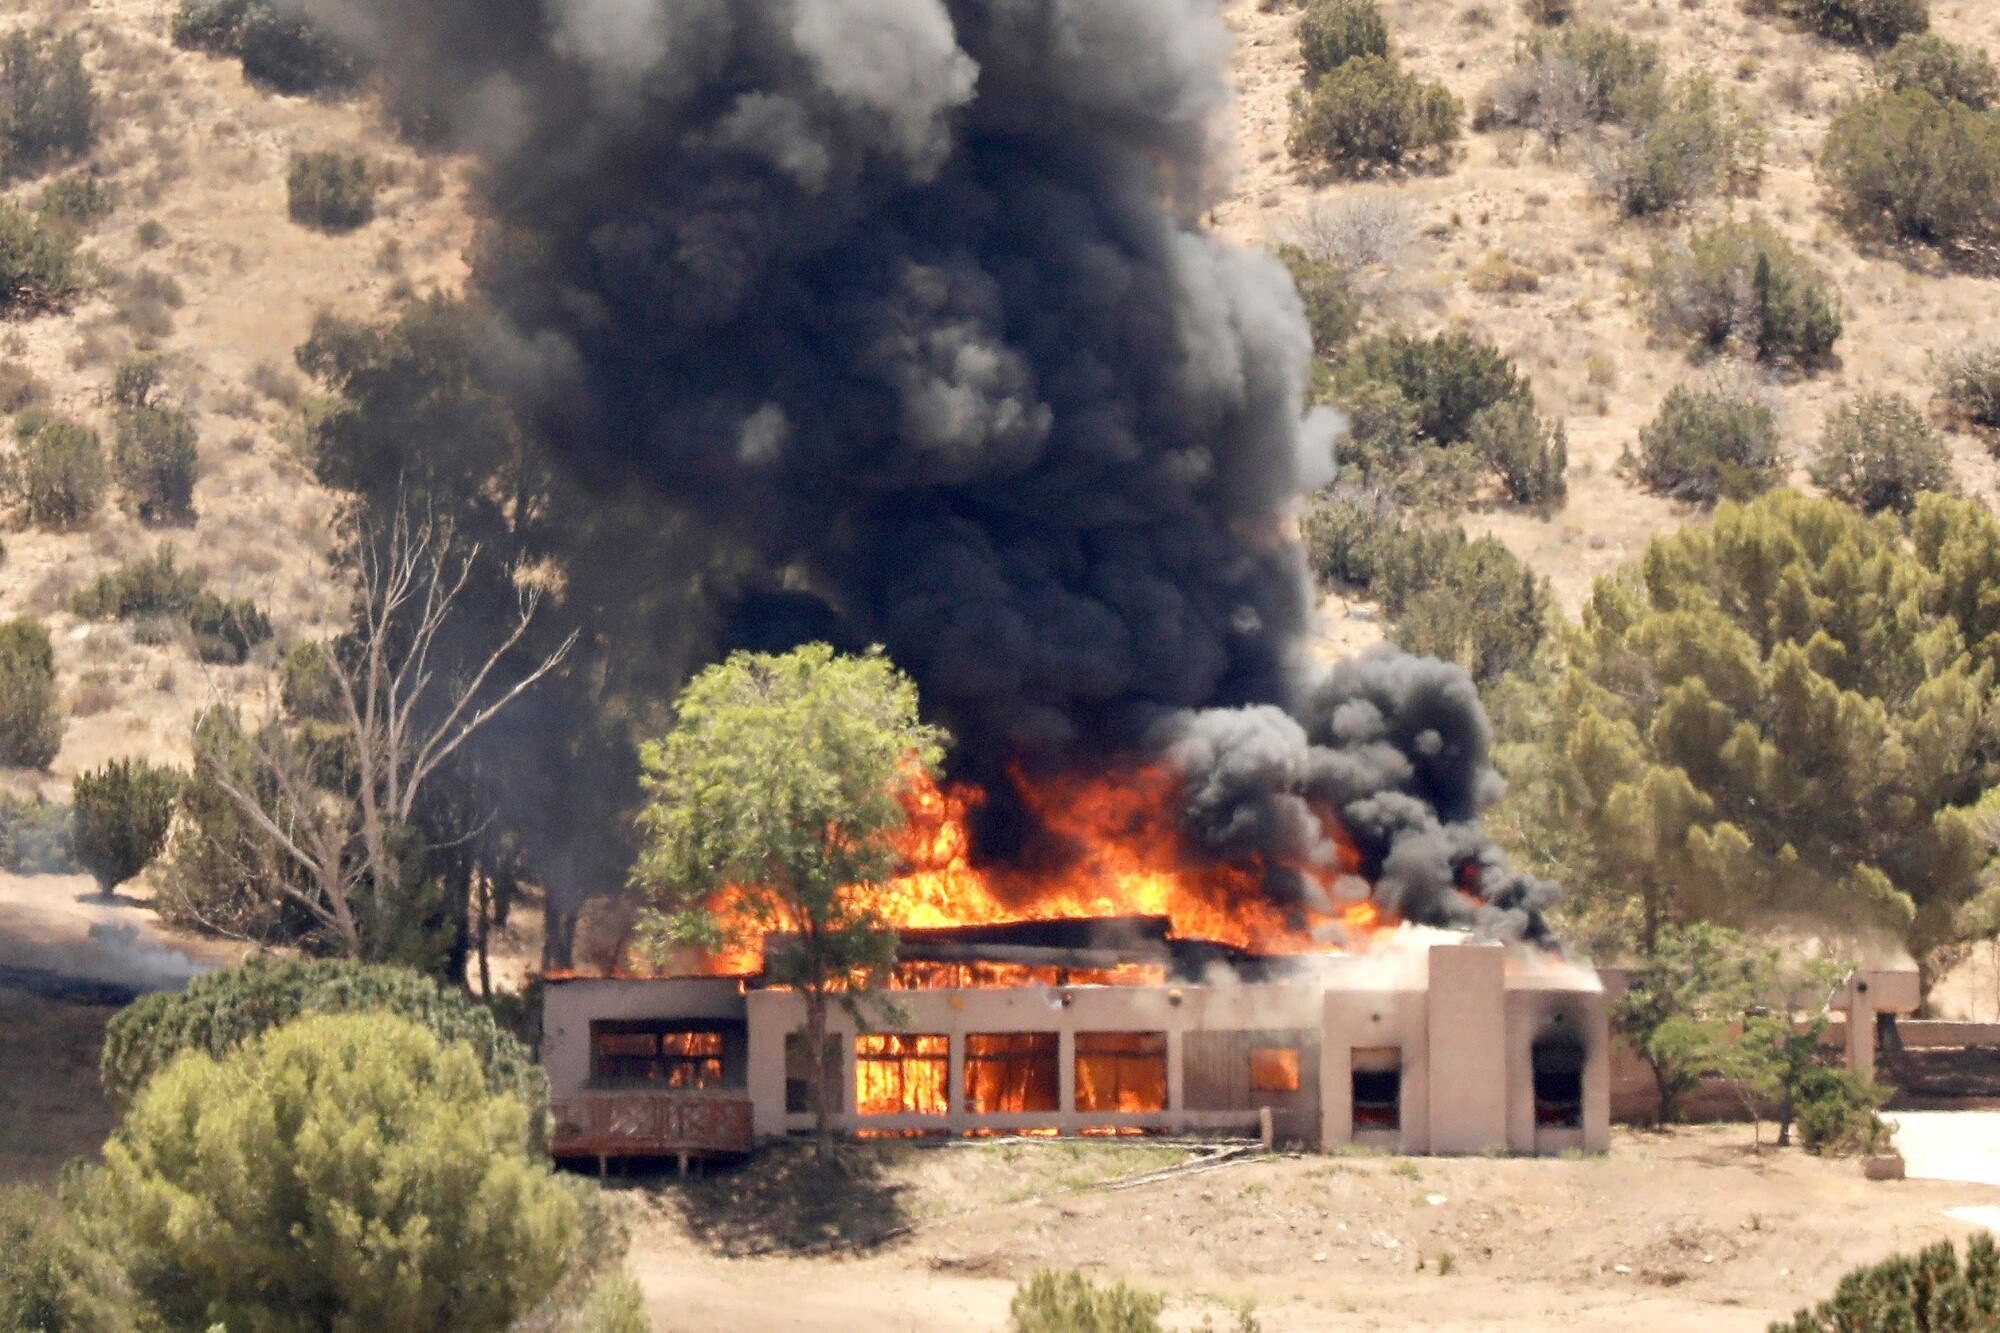 Off-duty firefighter shoots 2 colleagues at LA County firehouse, killing 1, before barricading himself in home set on fire